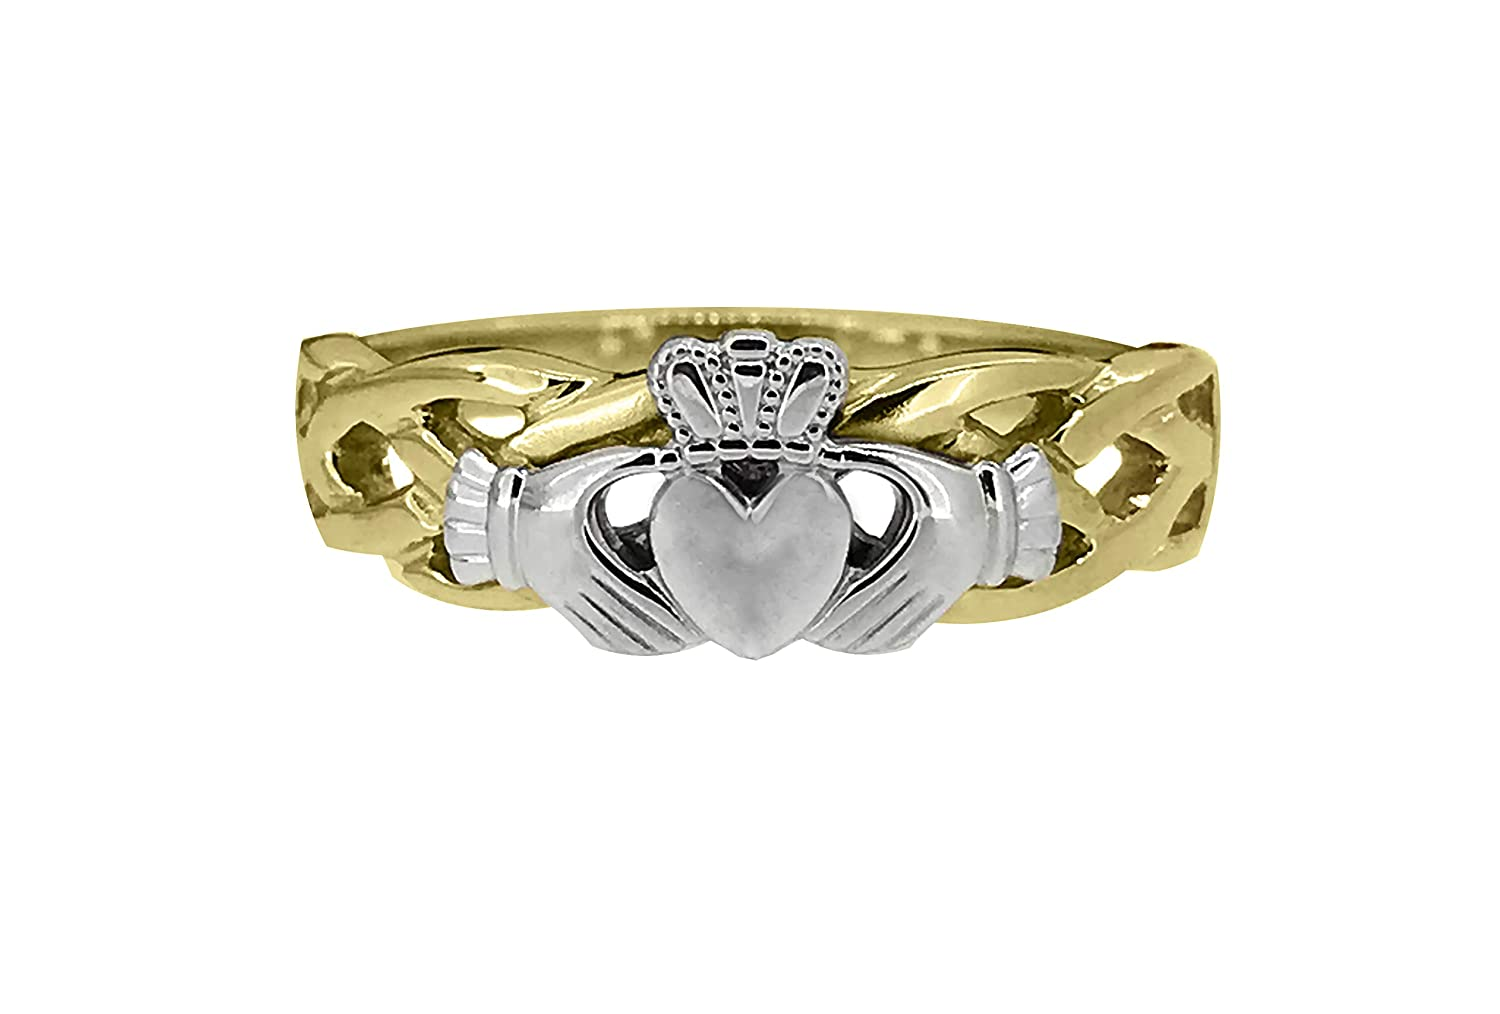 10ct Cheap mail order specialty store Yellow and White Gold Solid Siz Award Ladies Handmade Unity Ring